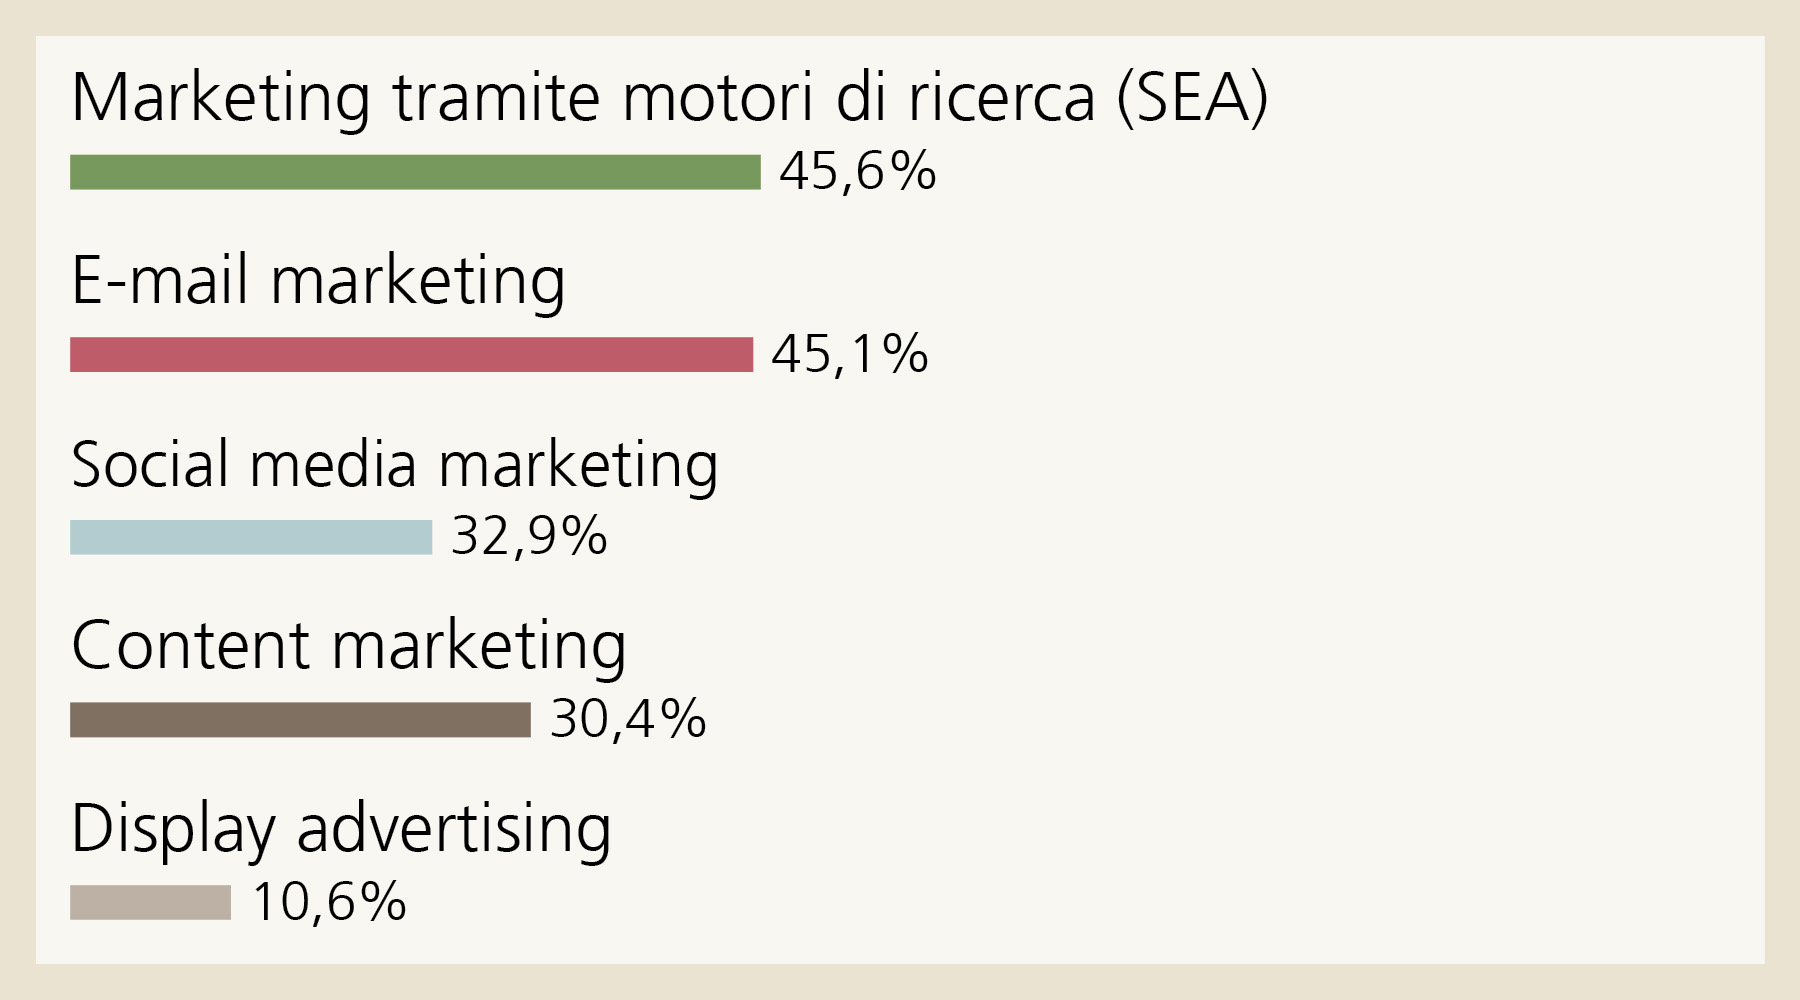 Comunicazione digitale: Circa la metà delle piccole imprese intervistate considera il marketing tramite motori di ricerca e l'e-mail marketing strumenti estremamente rilevanti. Marketing tramite motori di ricerca (SEA) 45,6%, E-mail marketing 45,1%, Social media marketing 32,9%, Content marketing 30,4%, Display advertising 10,6%.